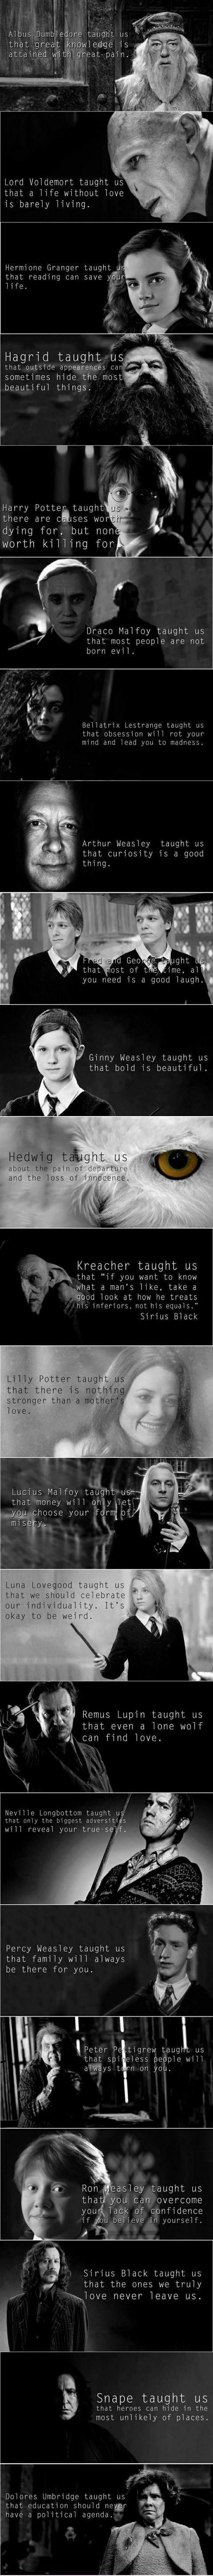 James potter told us that a bully can become a great man